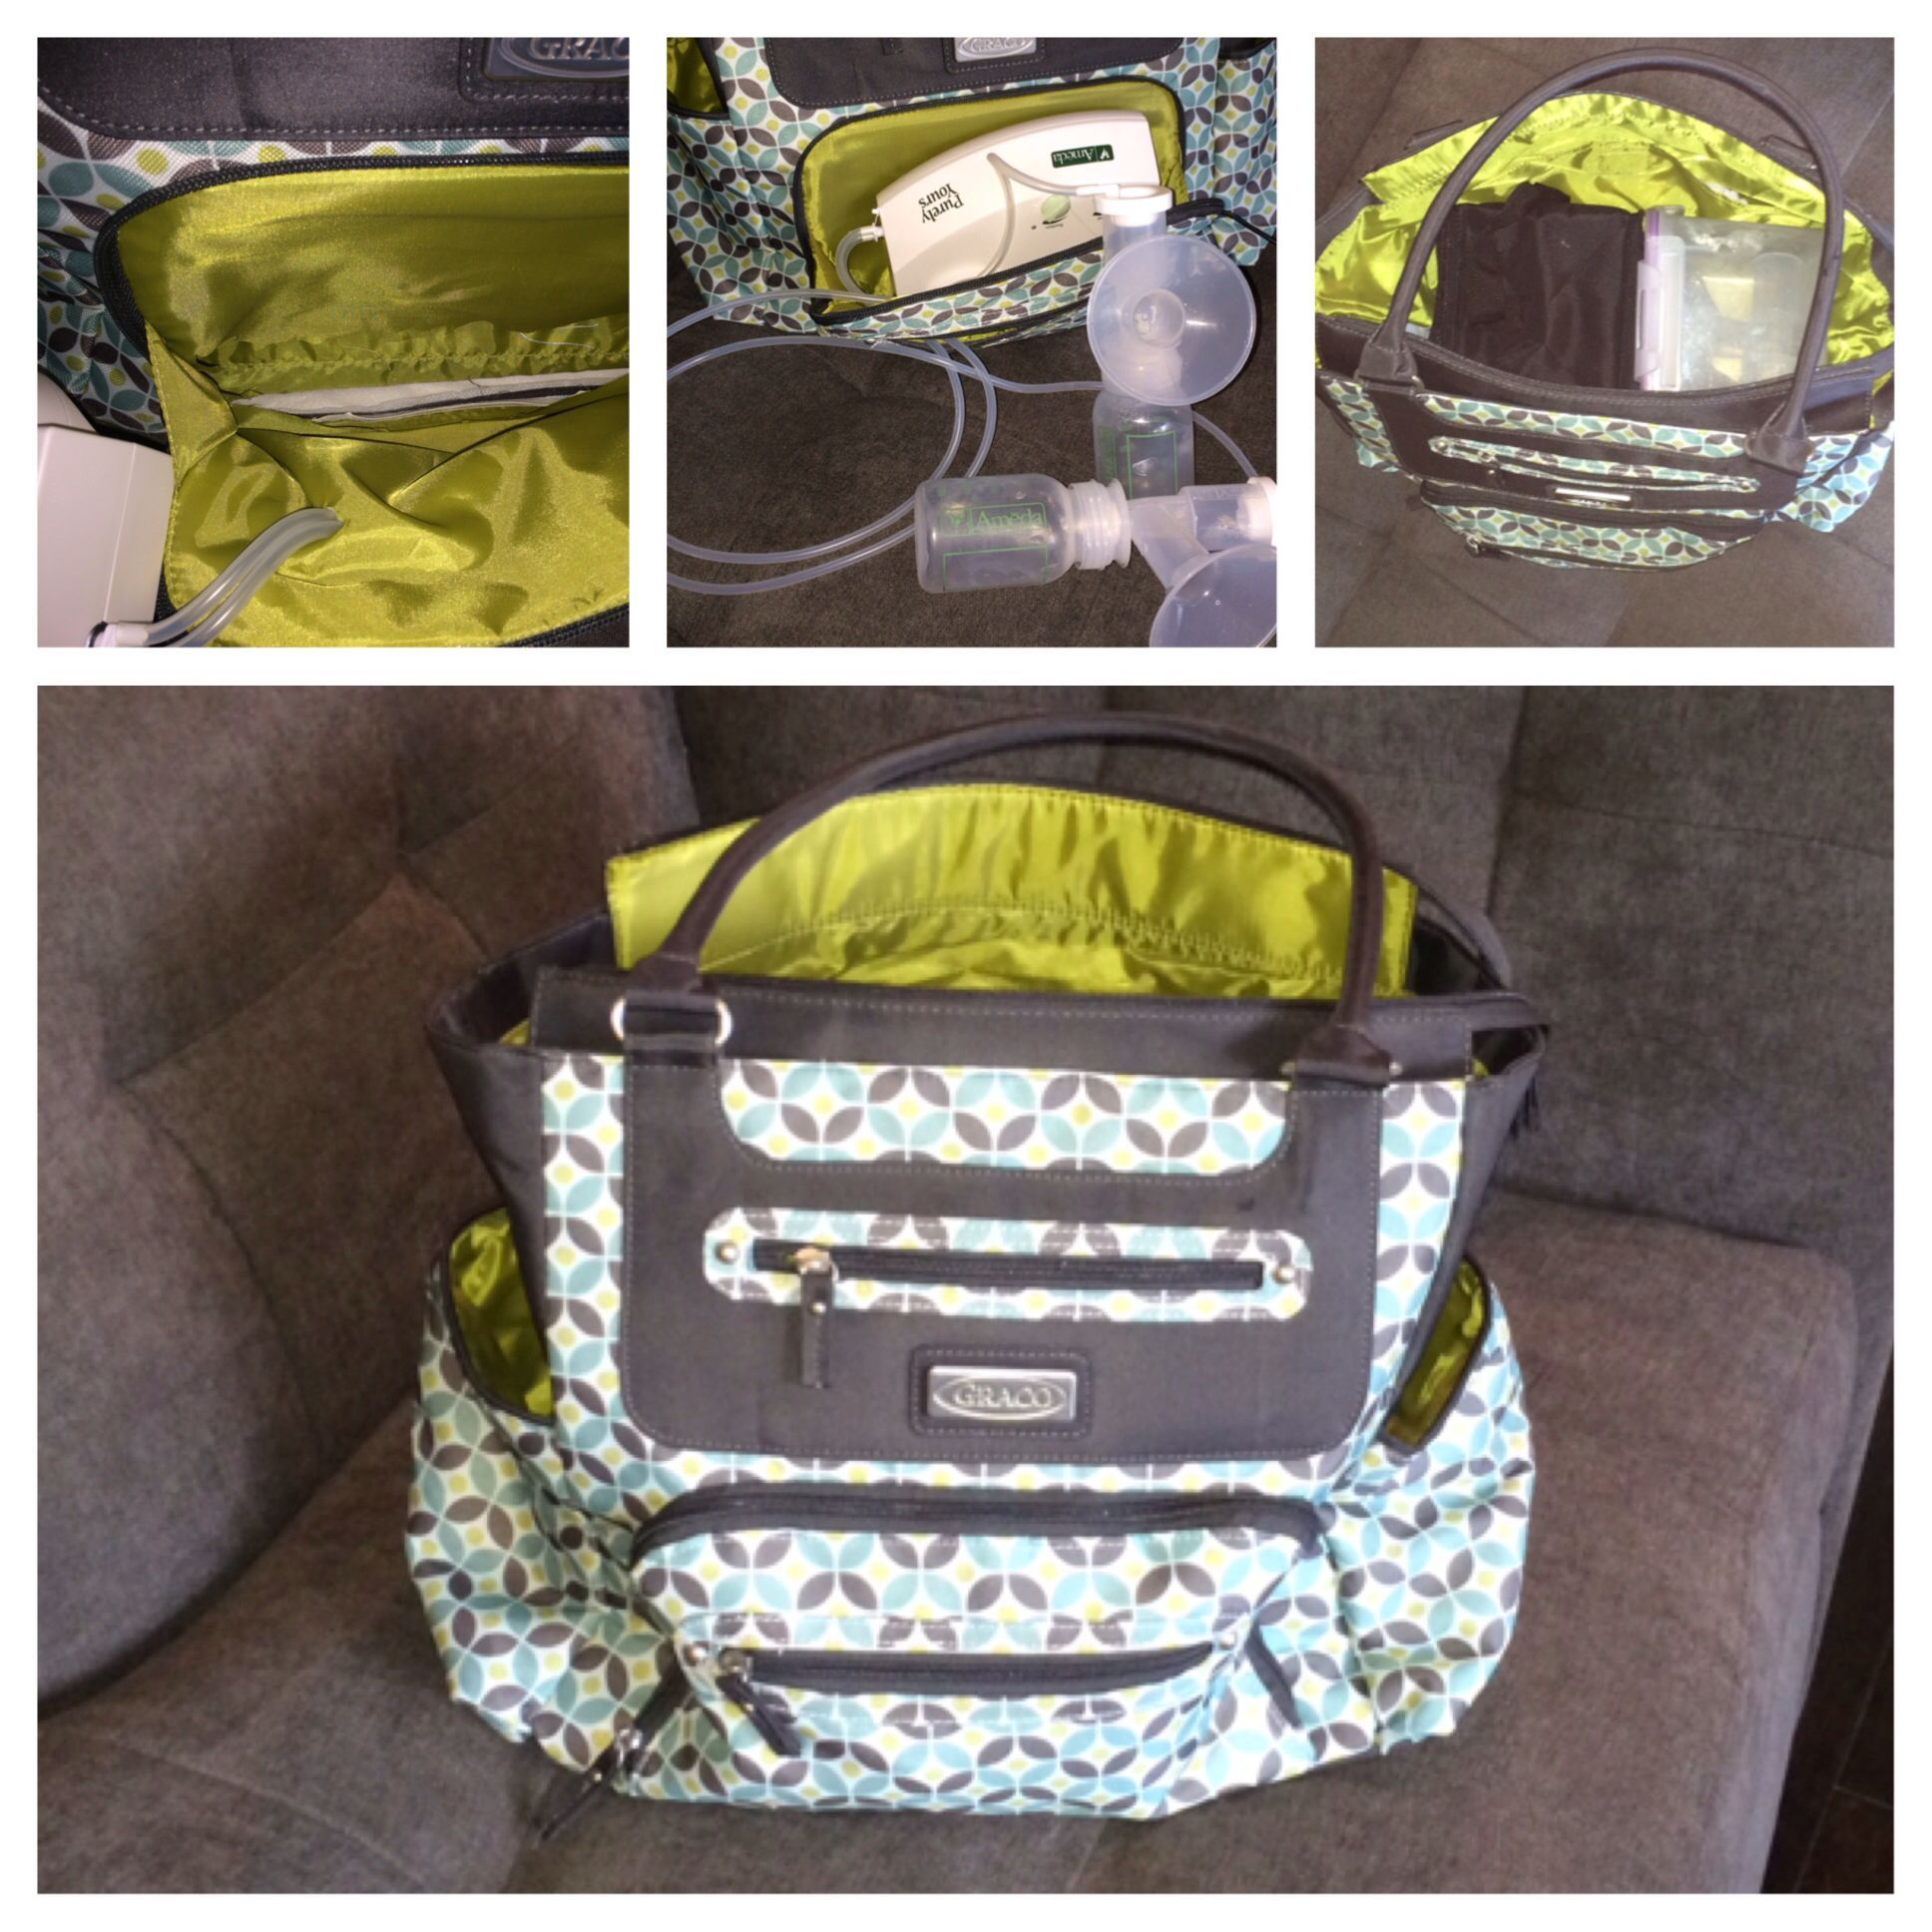 Dilemma Only T Pump Available On Insurance Plan Doesn Come With A Tote Solution Convert Graco Diaper Bag Into